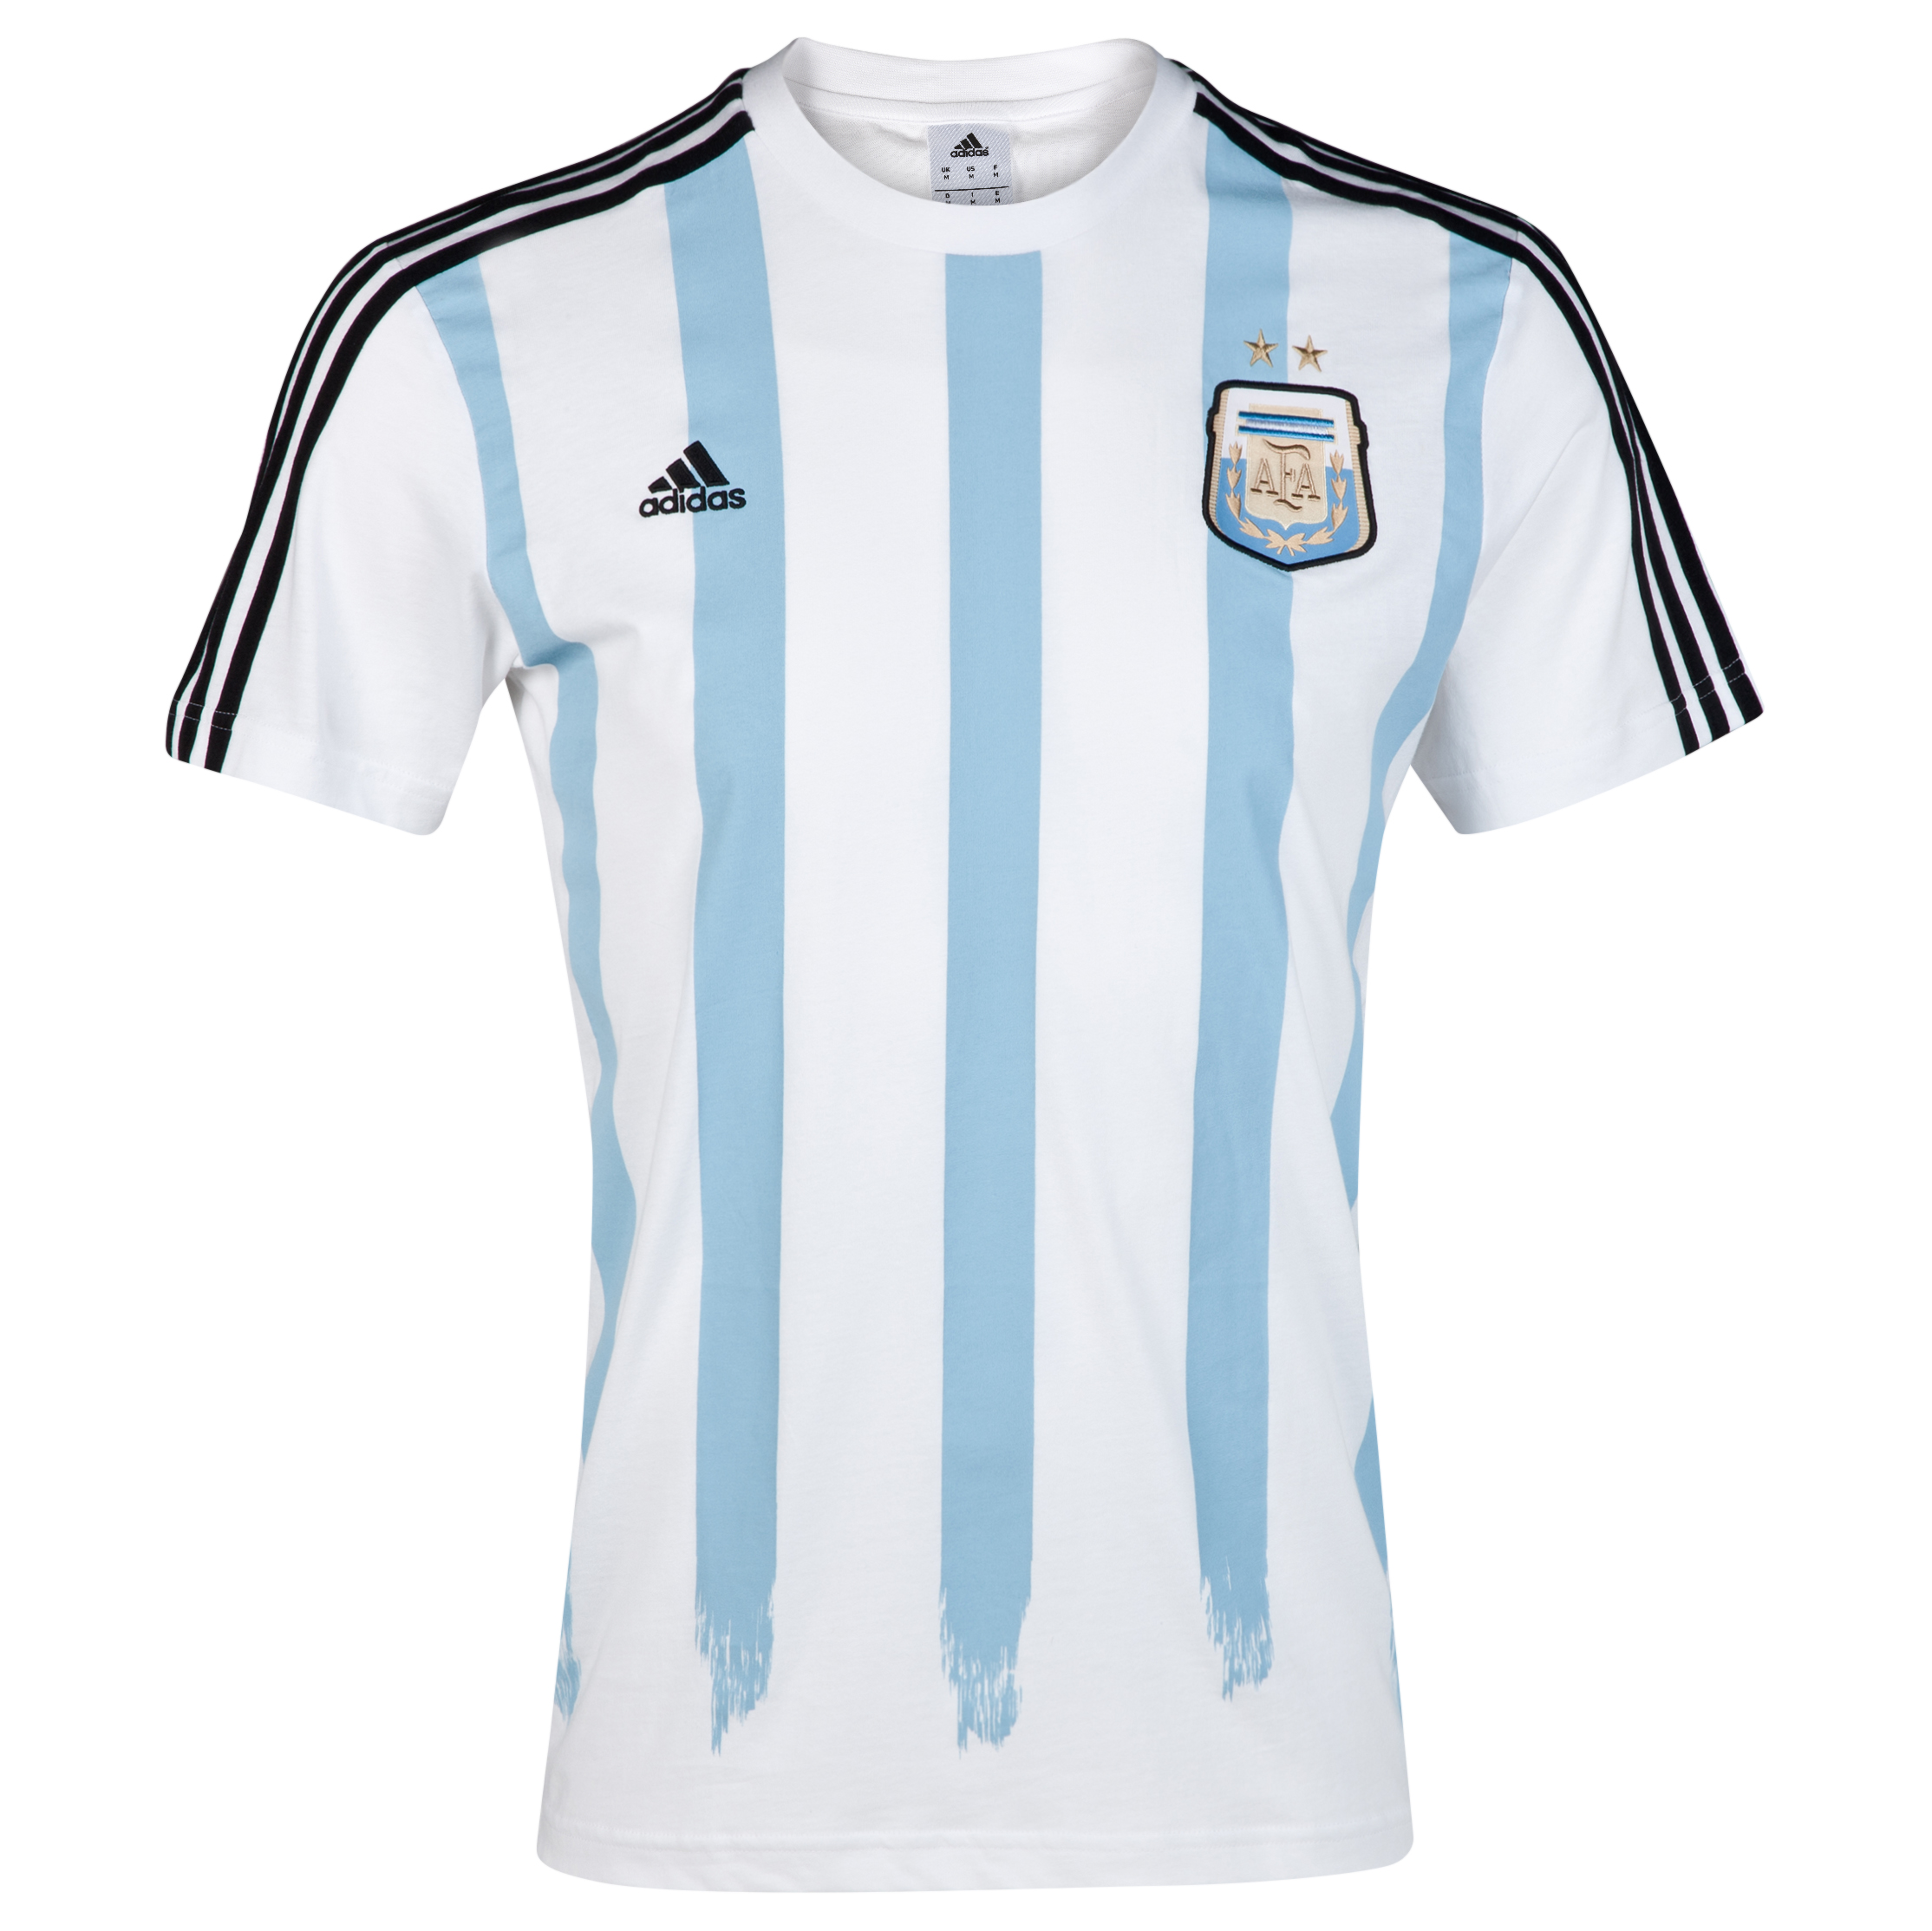 Argentina Messi T-shirt - White/Black